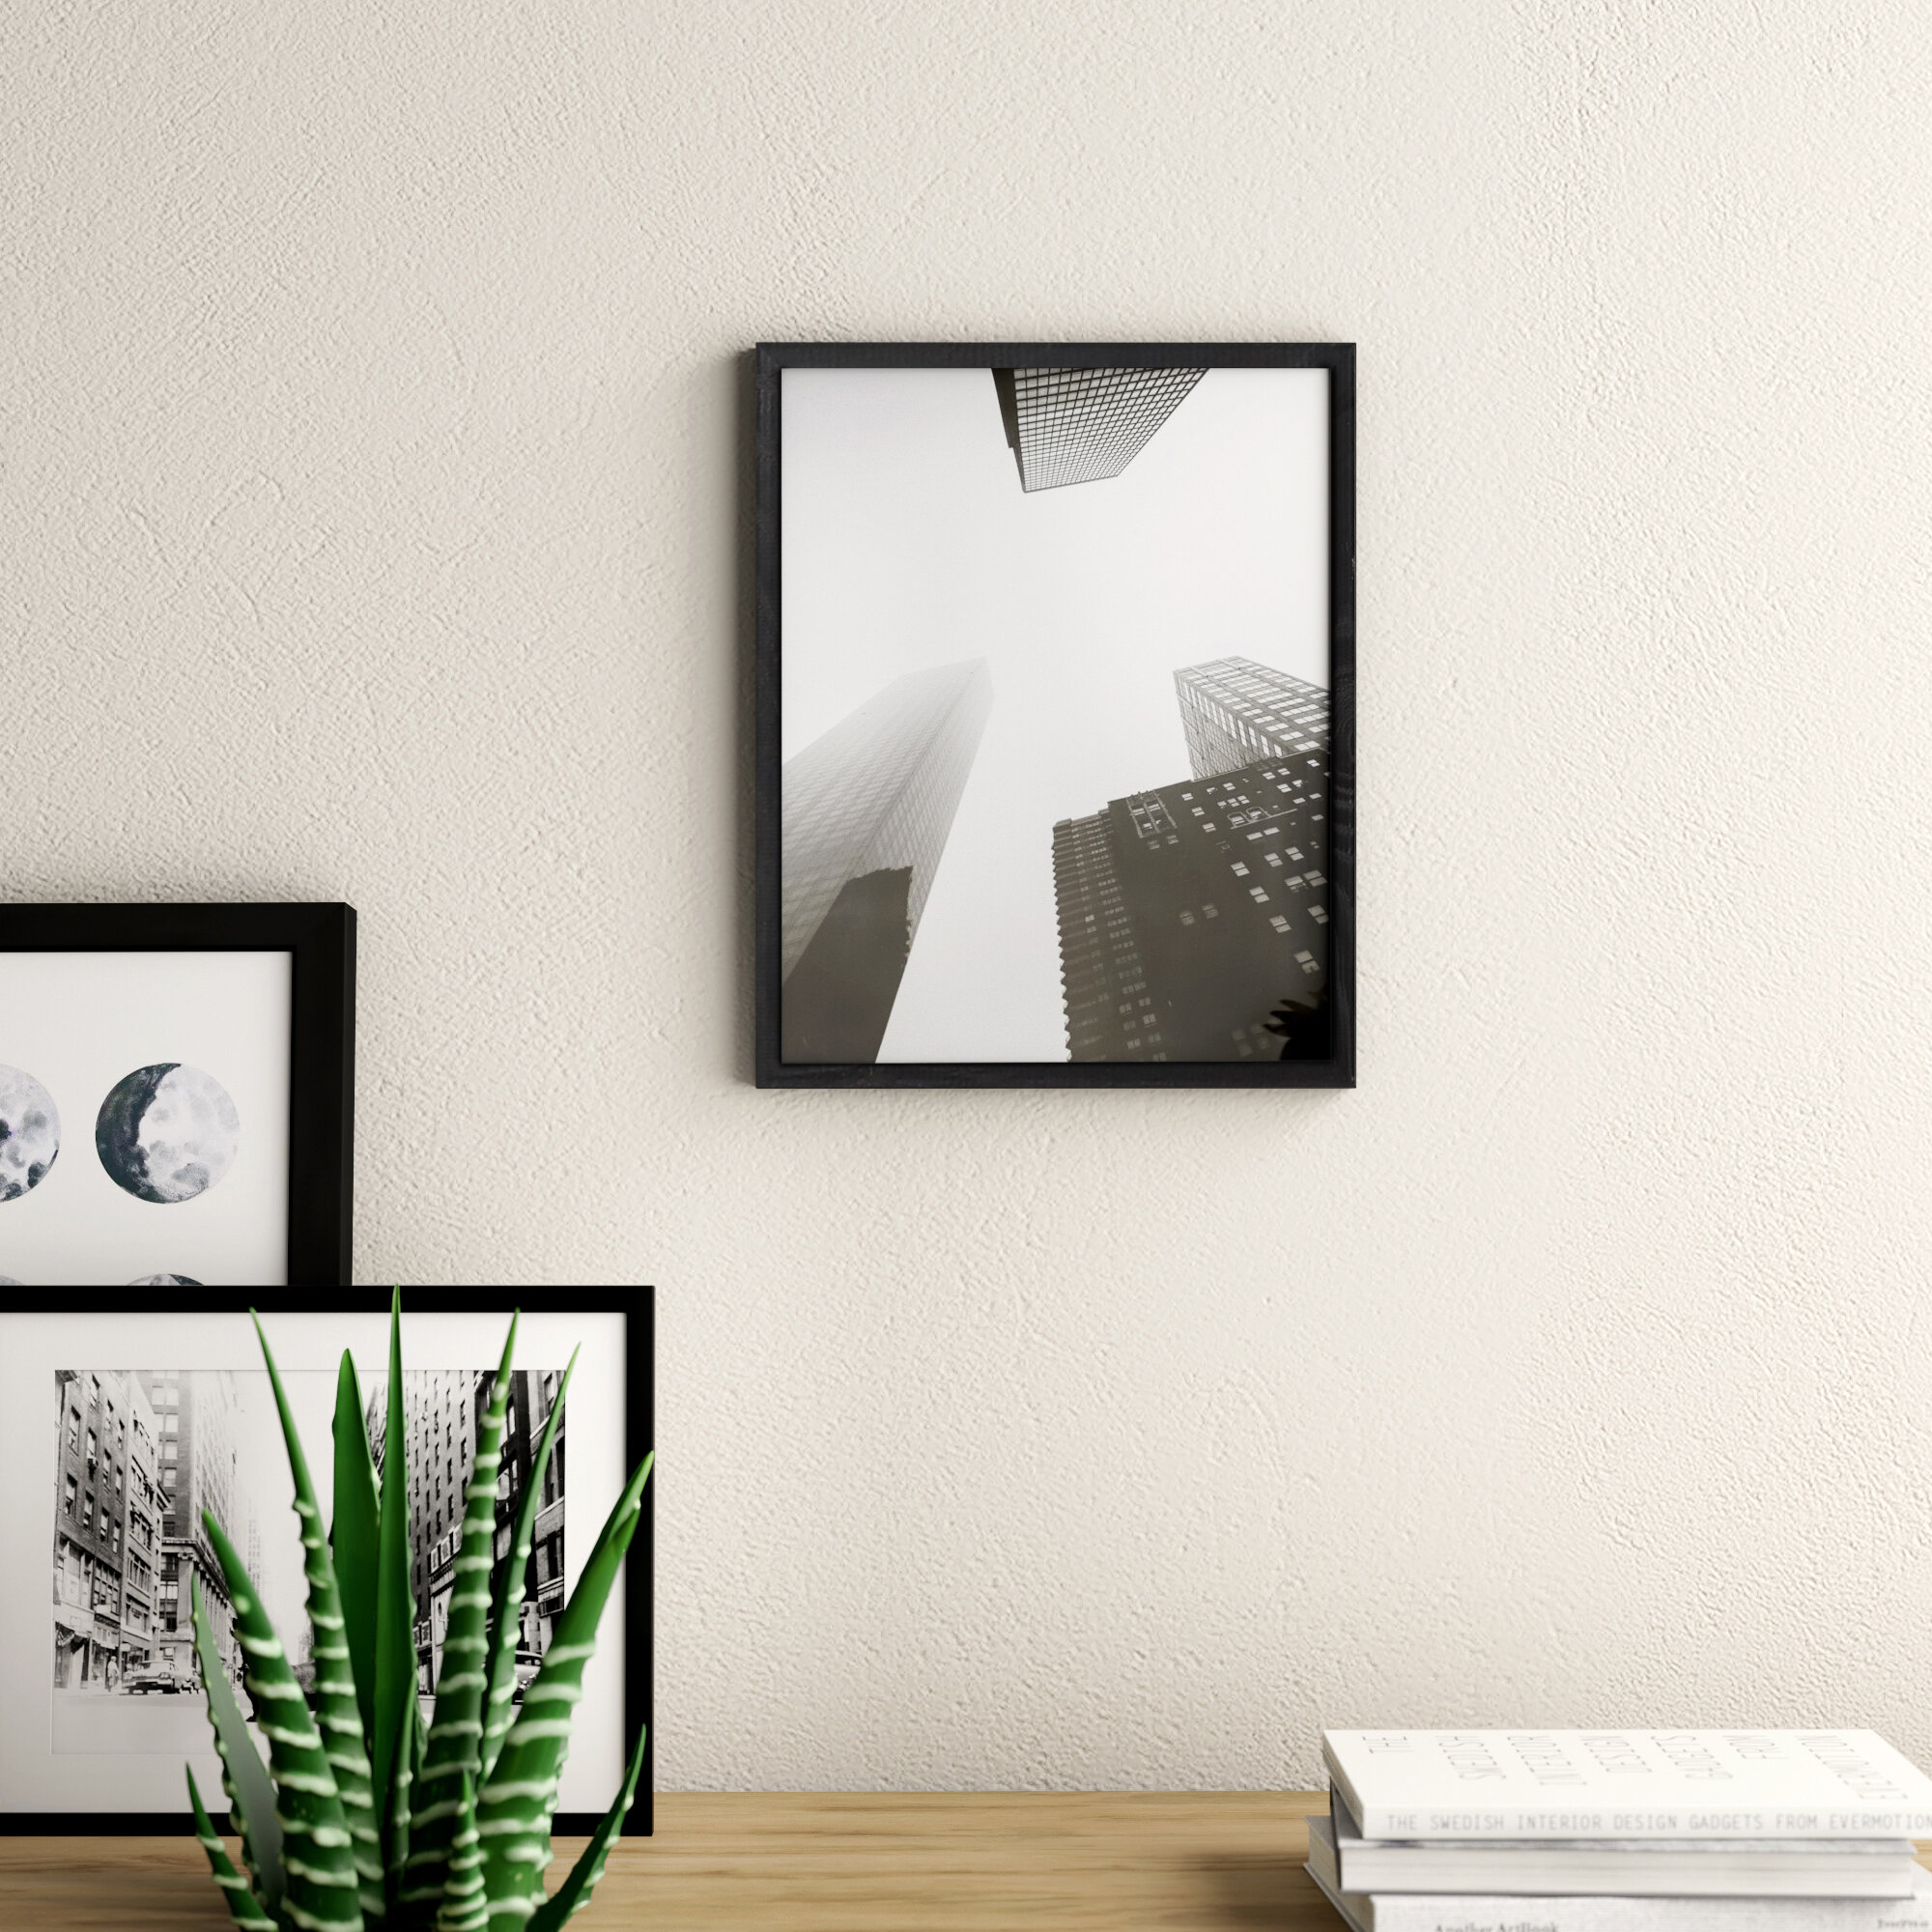 16 X 20 Picture Frames You Ll Love In 2021 Wayfair